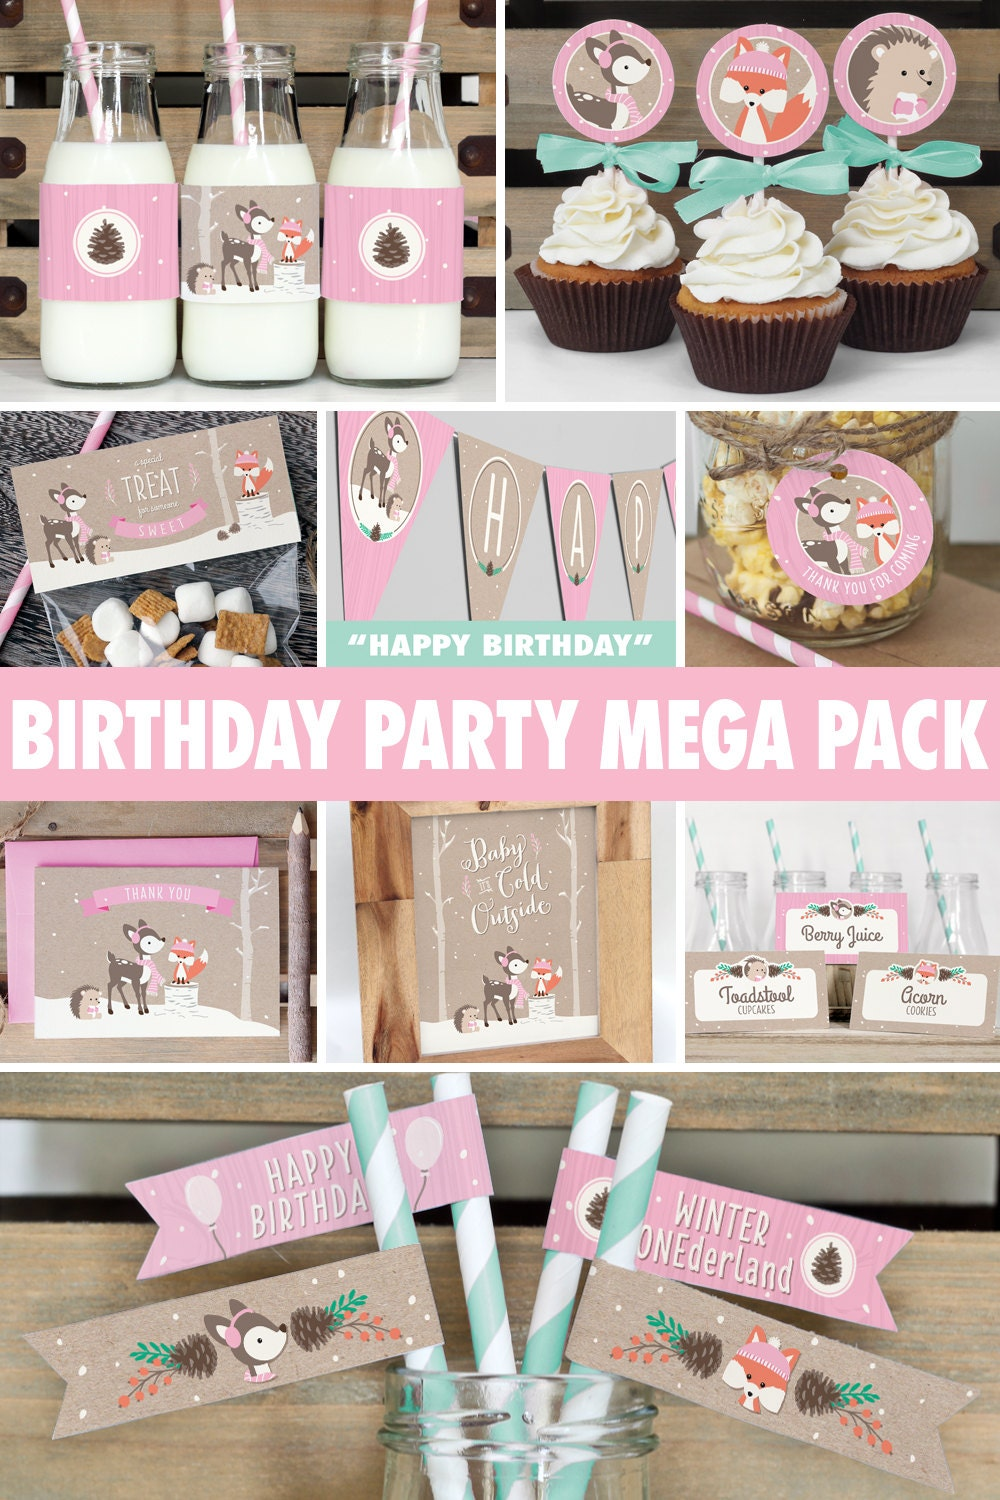 Winter woodland birthday party mega pack girl pink for 1st birthday decoration packs